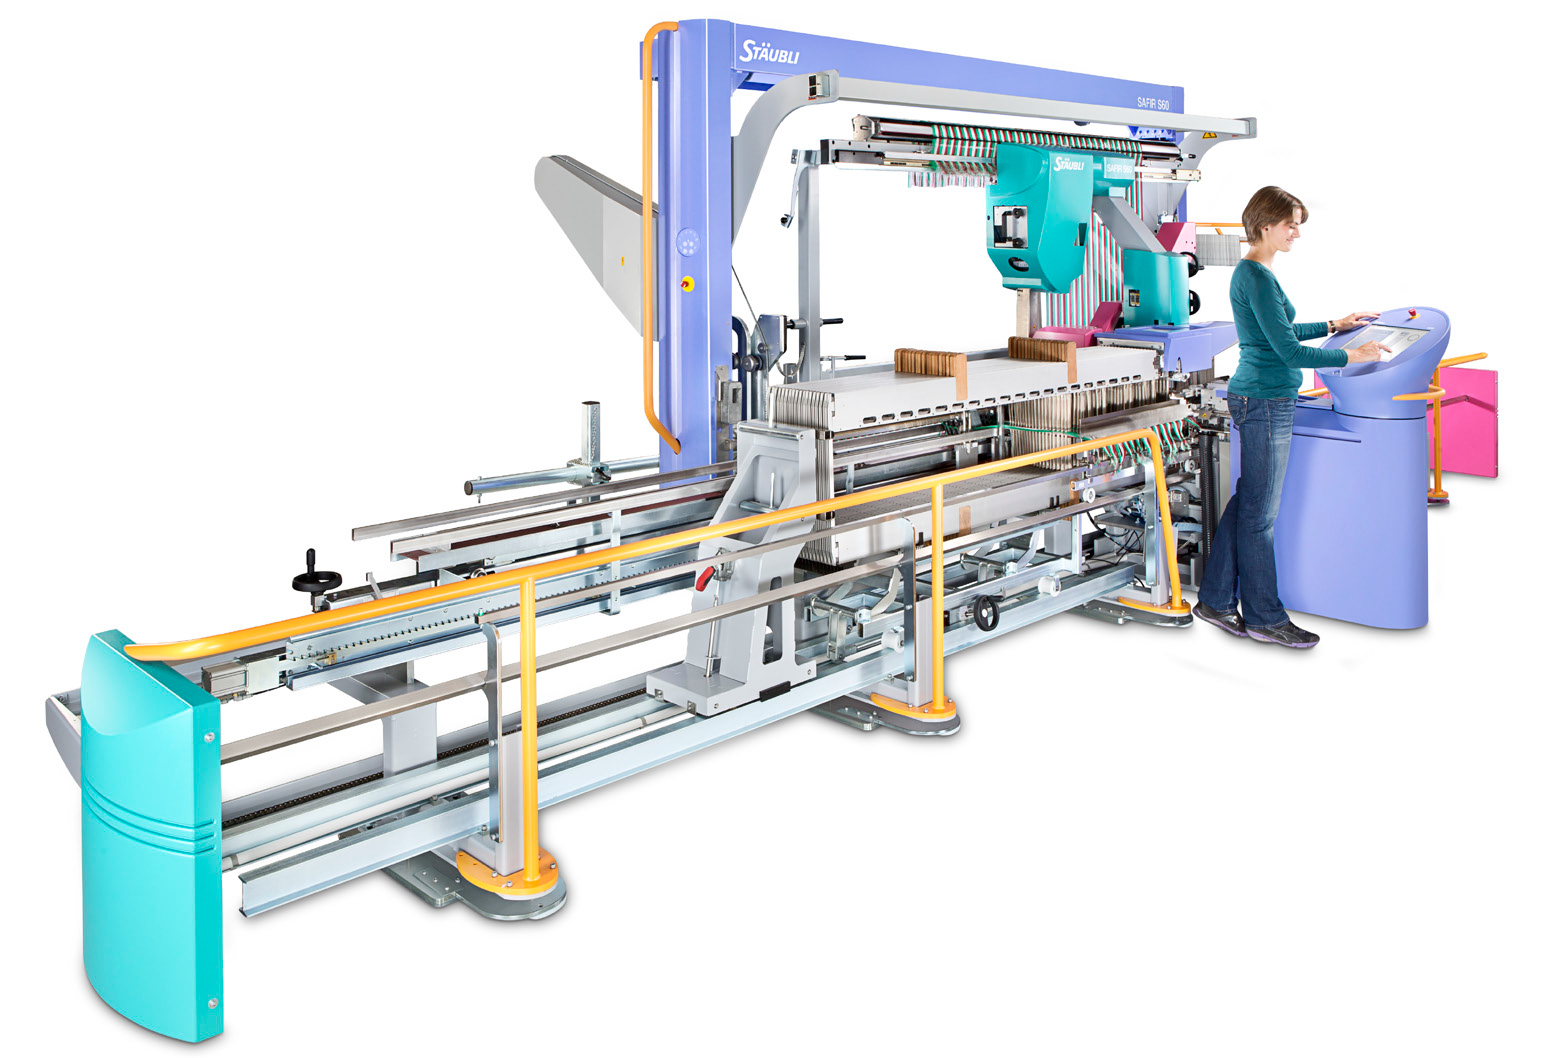 Stäubli: A Leading Swiss Technical Solutions Provider for A Wide Range of Industries